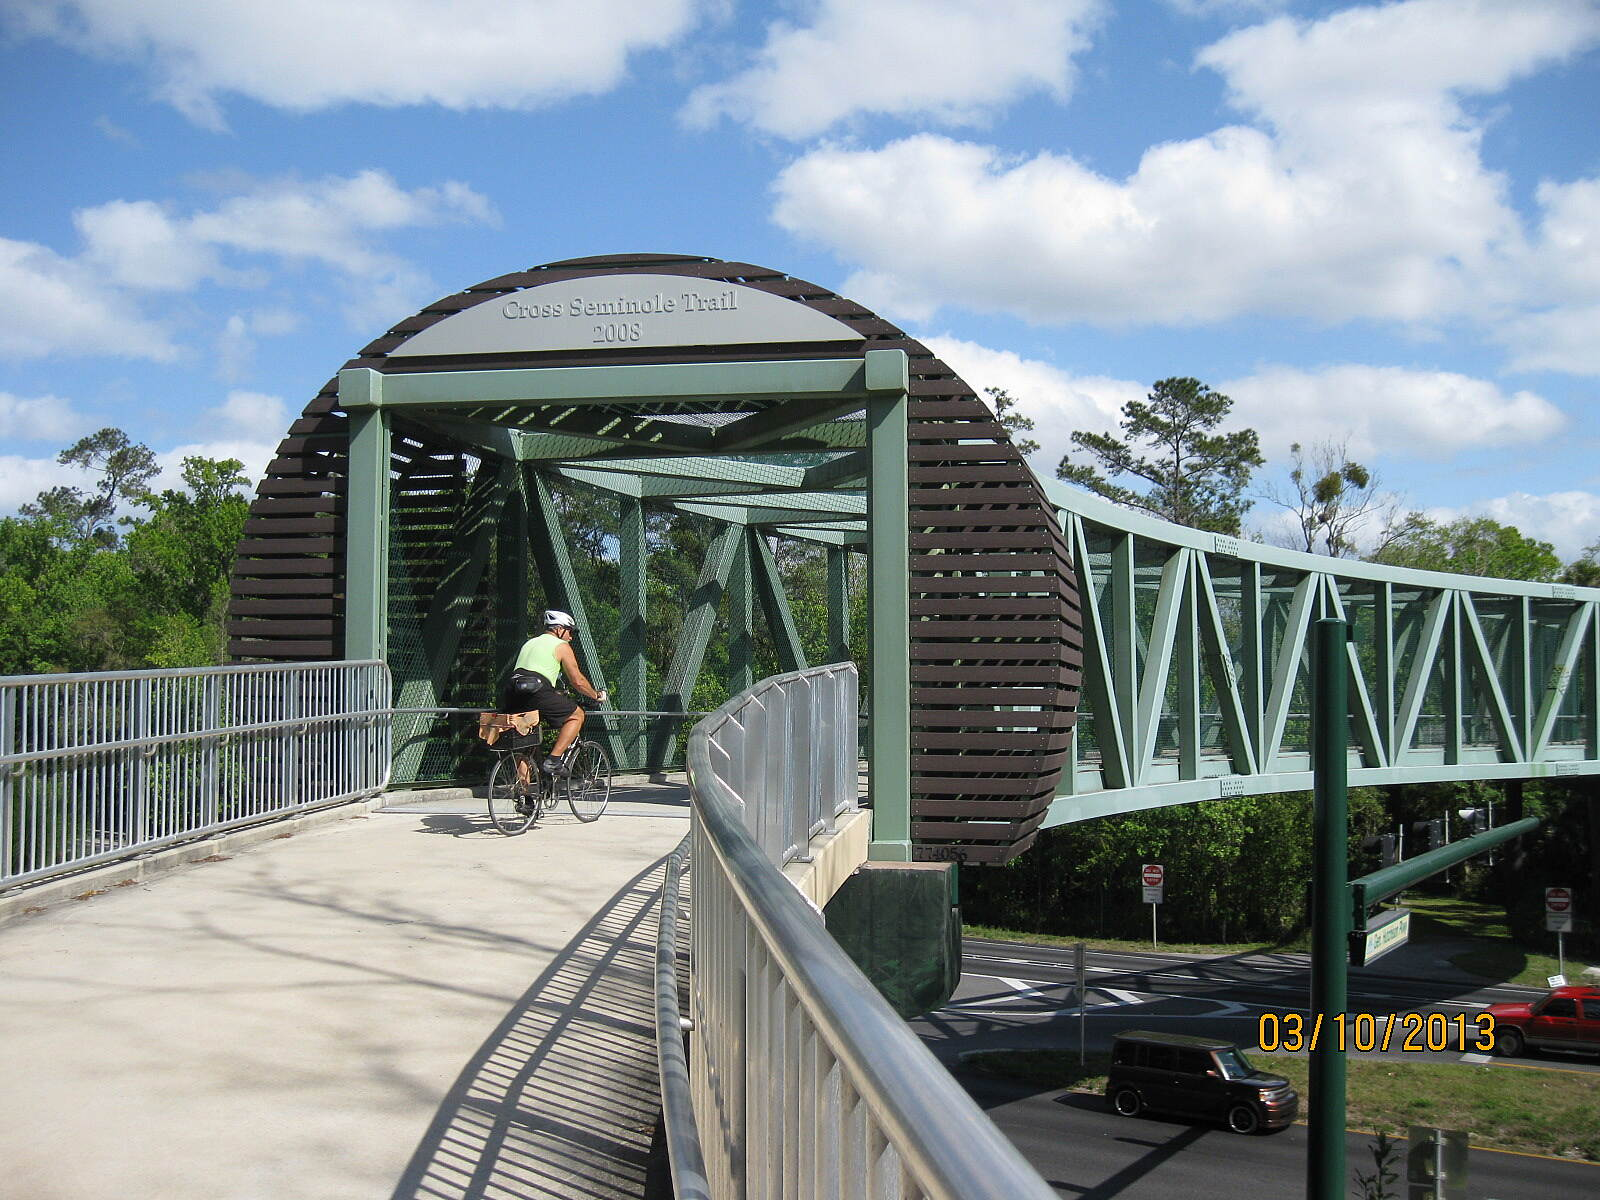 Cross Seminole Trail Bridge Across Hwy 17-92 Bridge Across Highway 17-92 near Longwood/Winter Springs